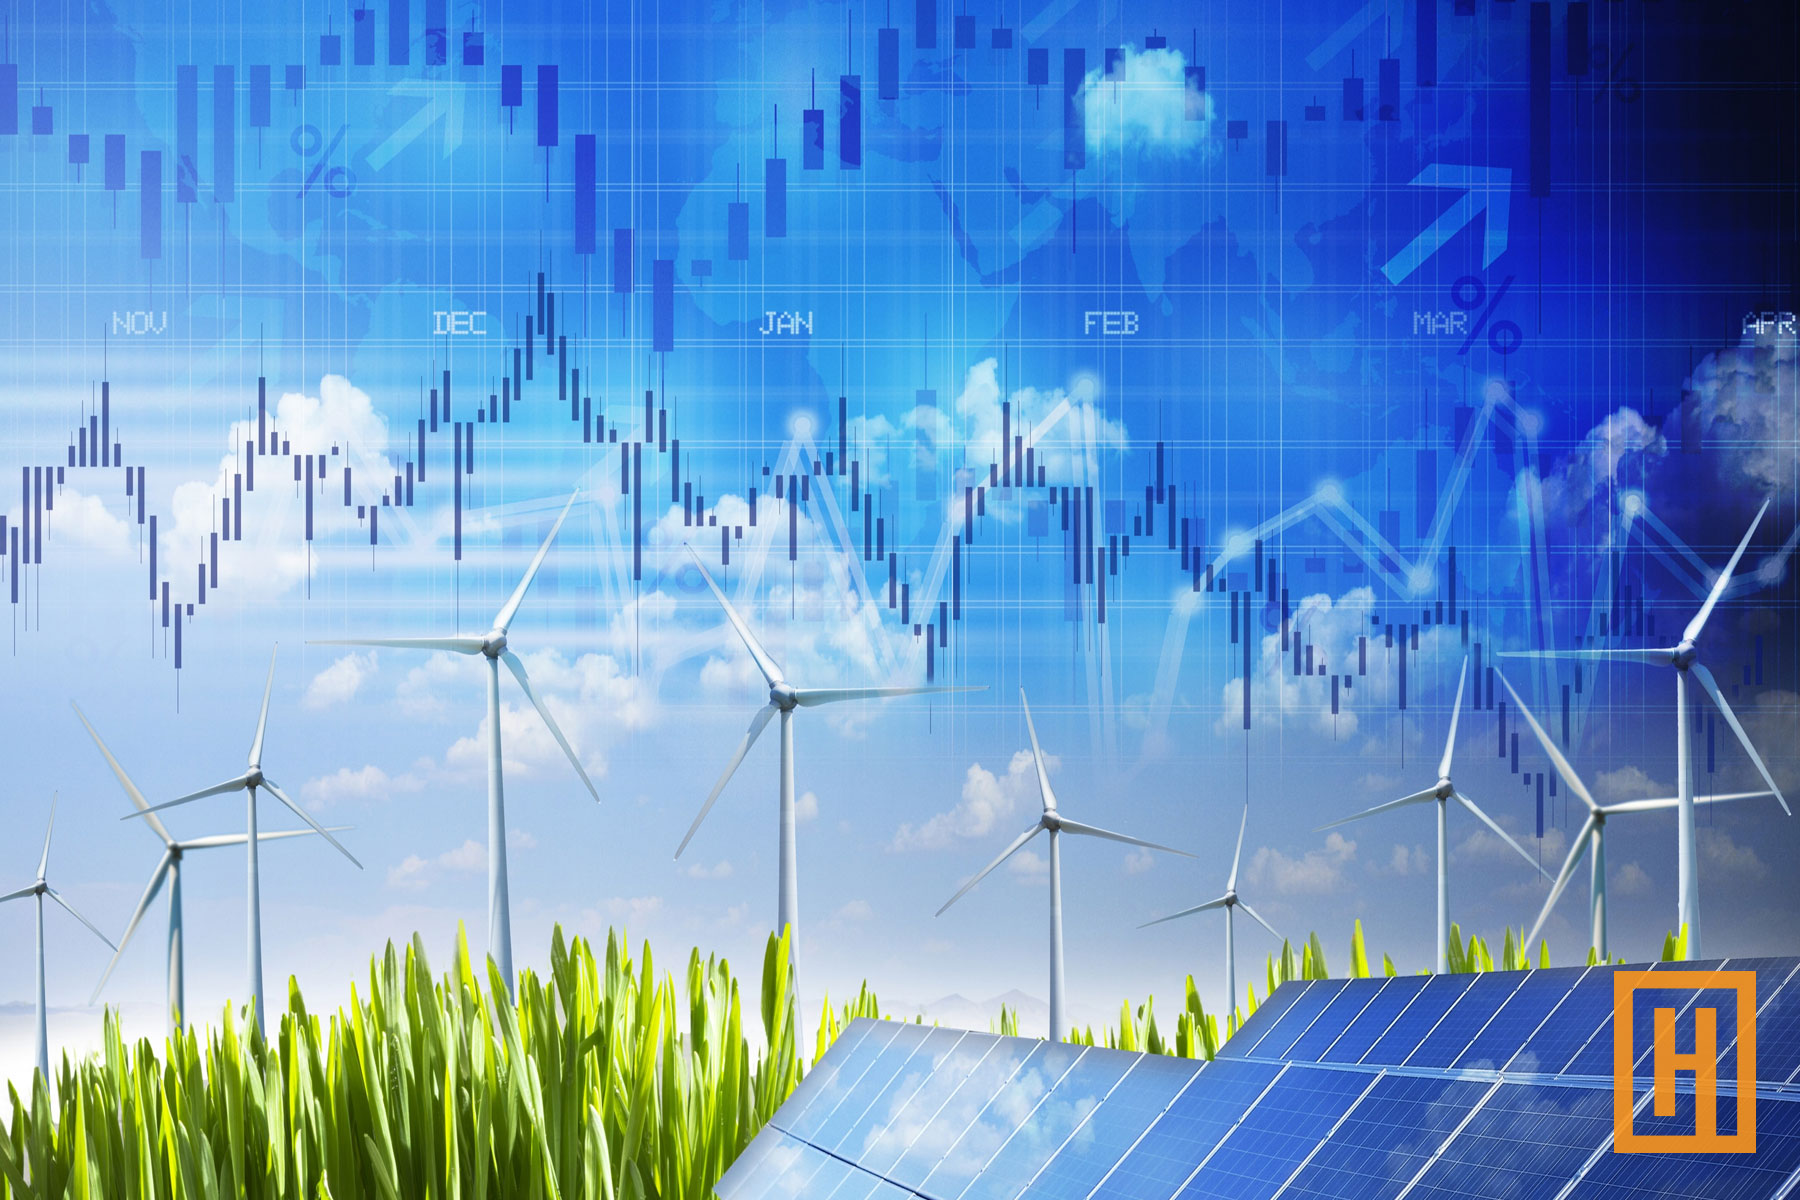 sustainable energy image blended with stock market graph trends